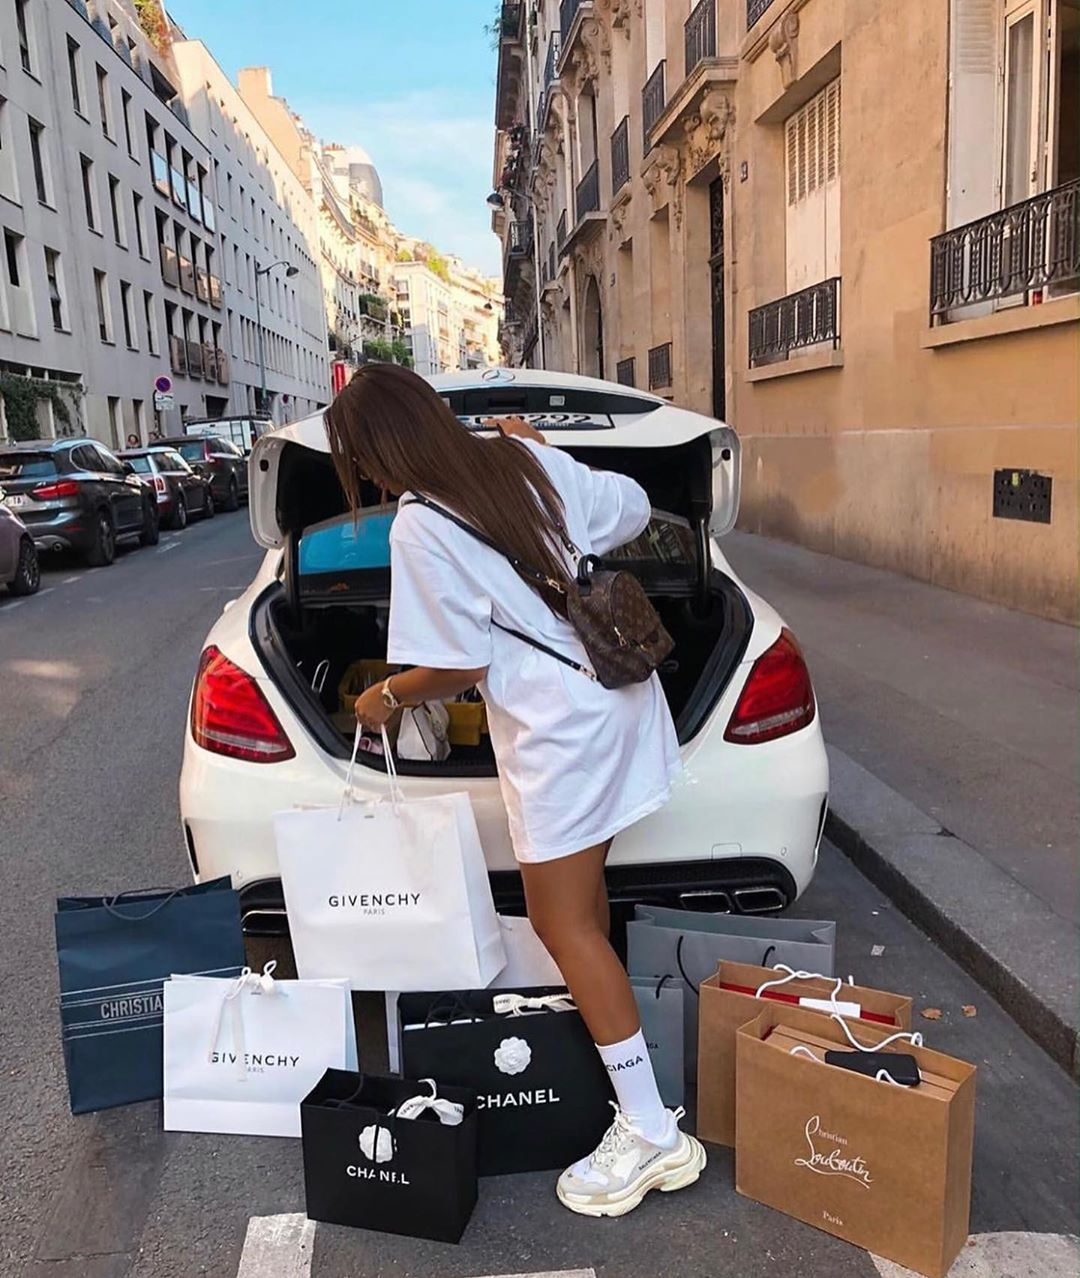 500 wealth and abundance ideas in 2020 money stacks wealth luxe life pinterest